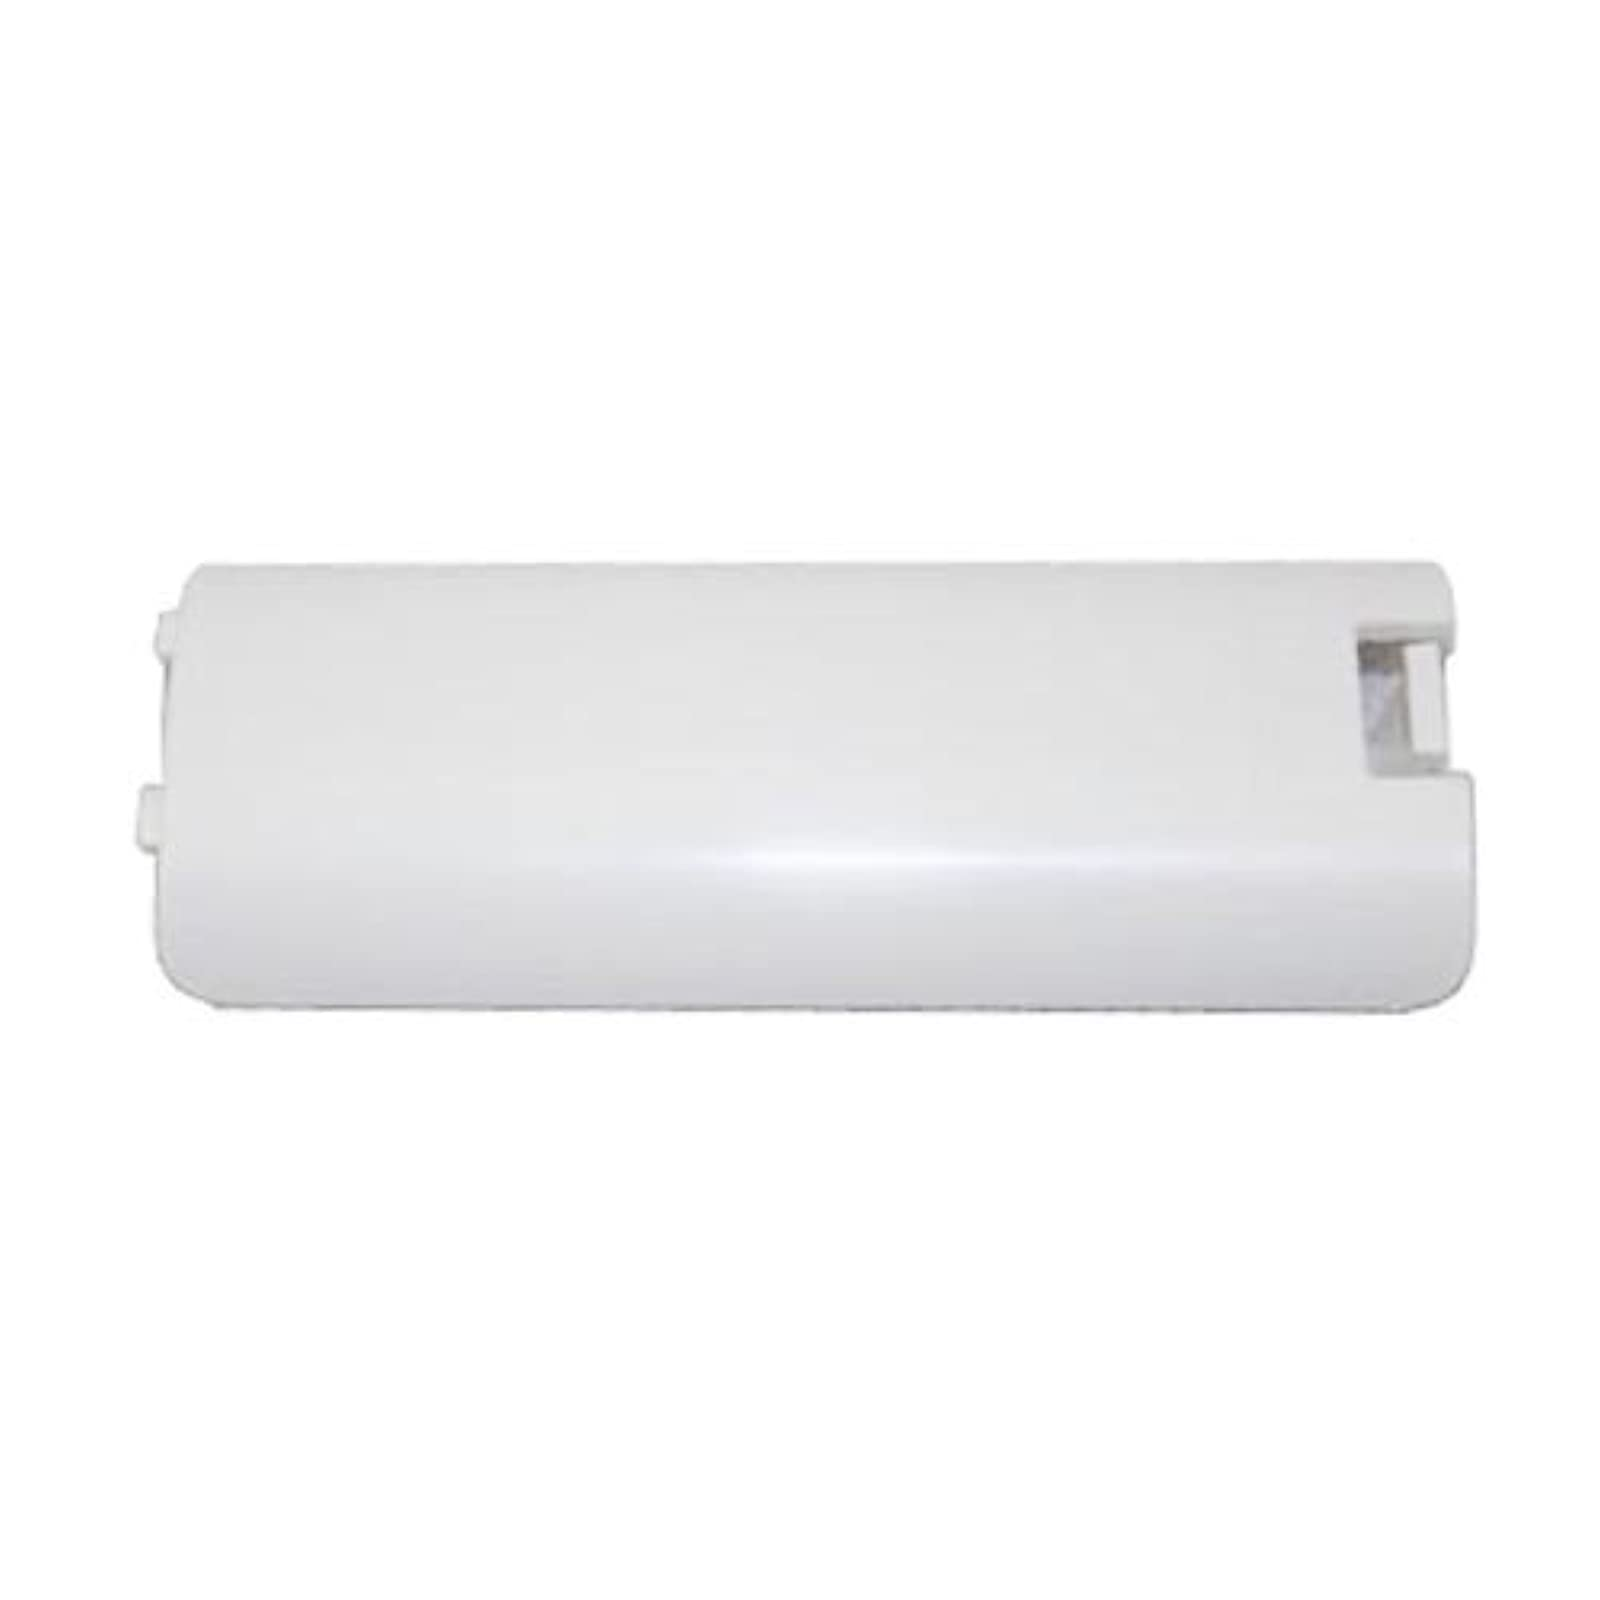 White Replacement Battery Cover For Controller Protective For Wii